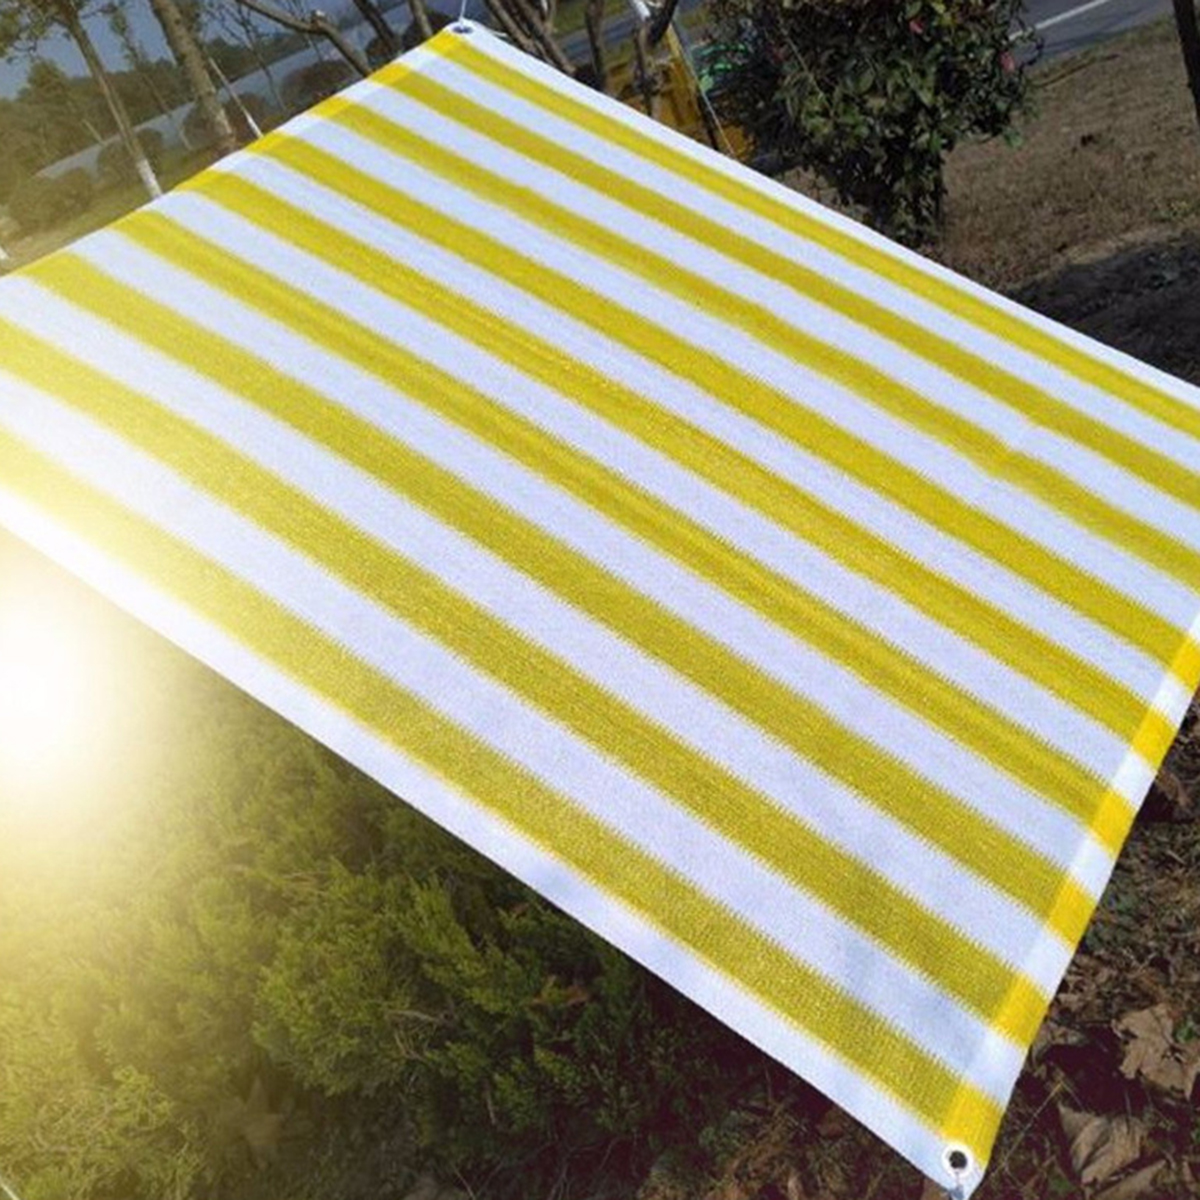 Anti UV Sun Shade Sail Awning Canopy Balcony Cloth Cover Outdoor Garden